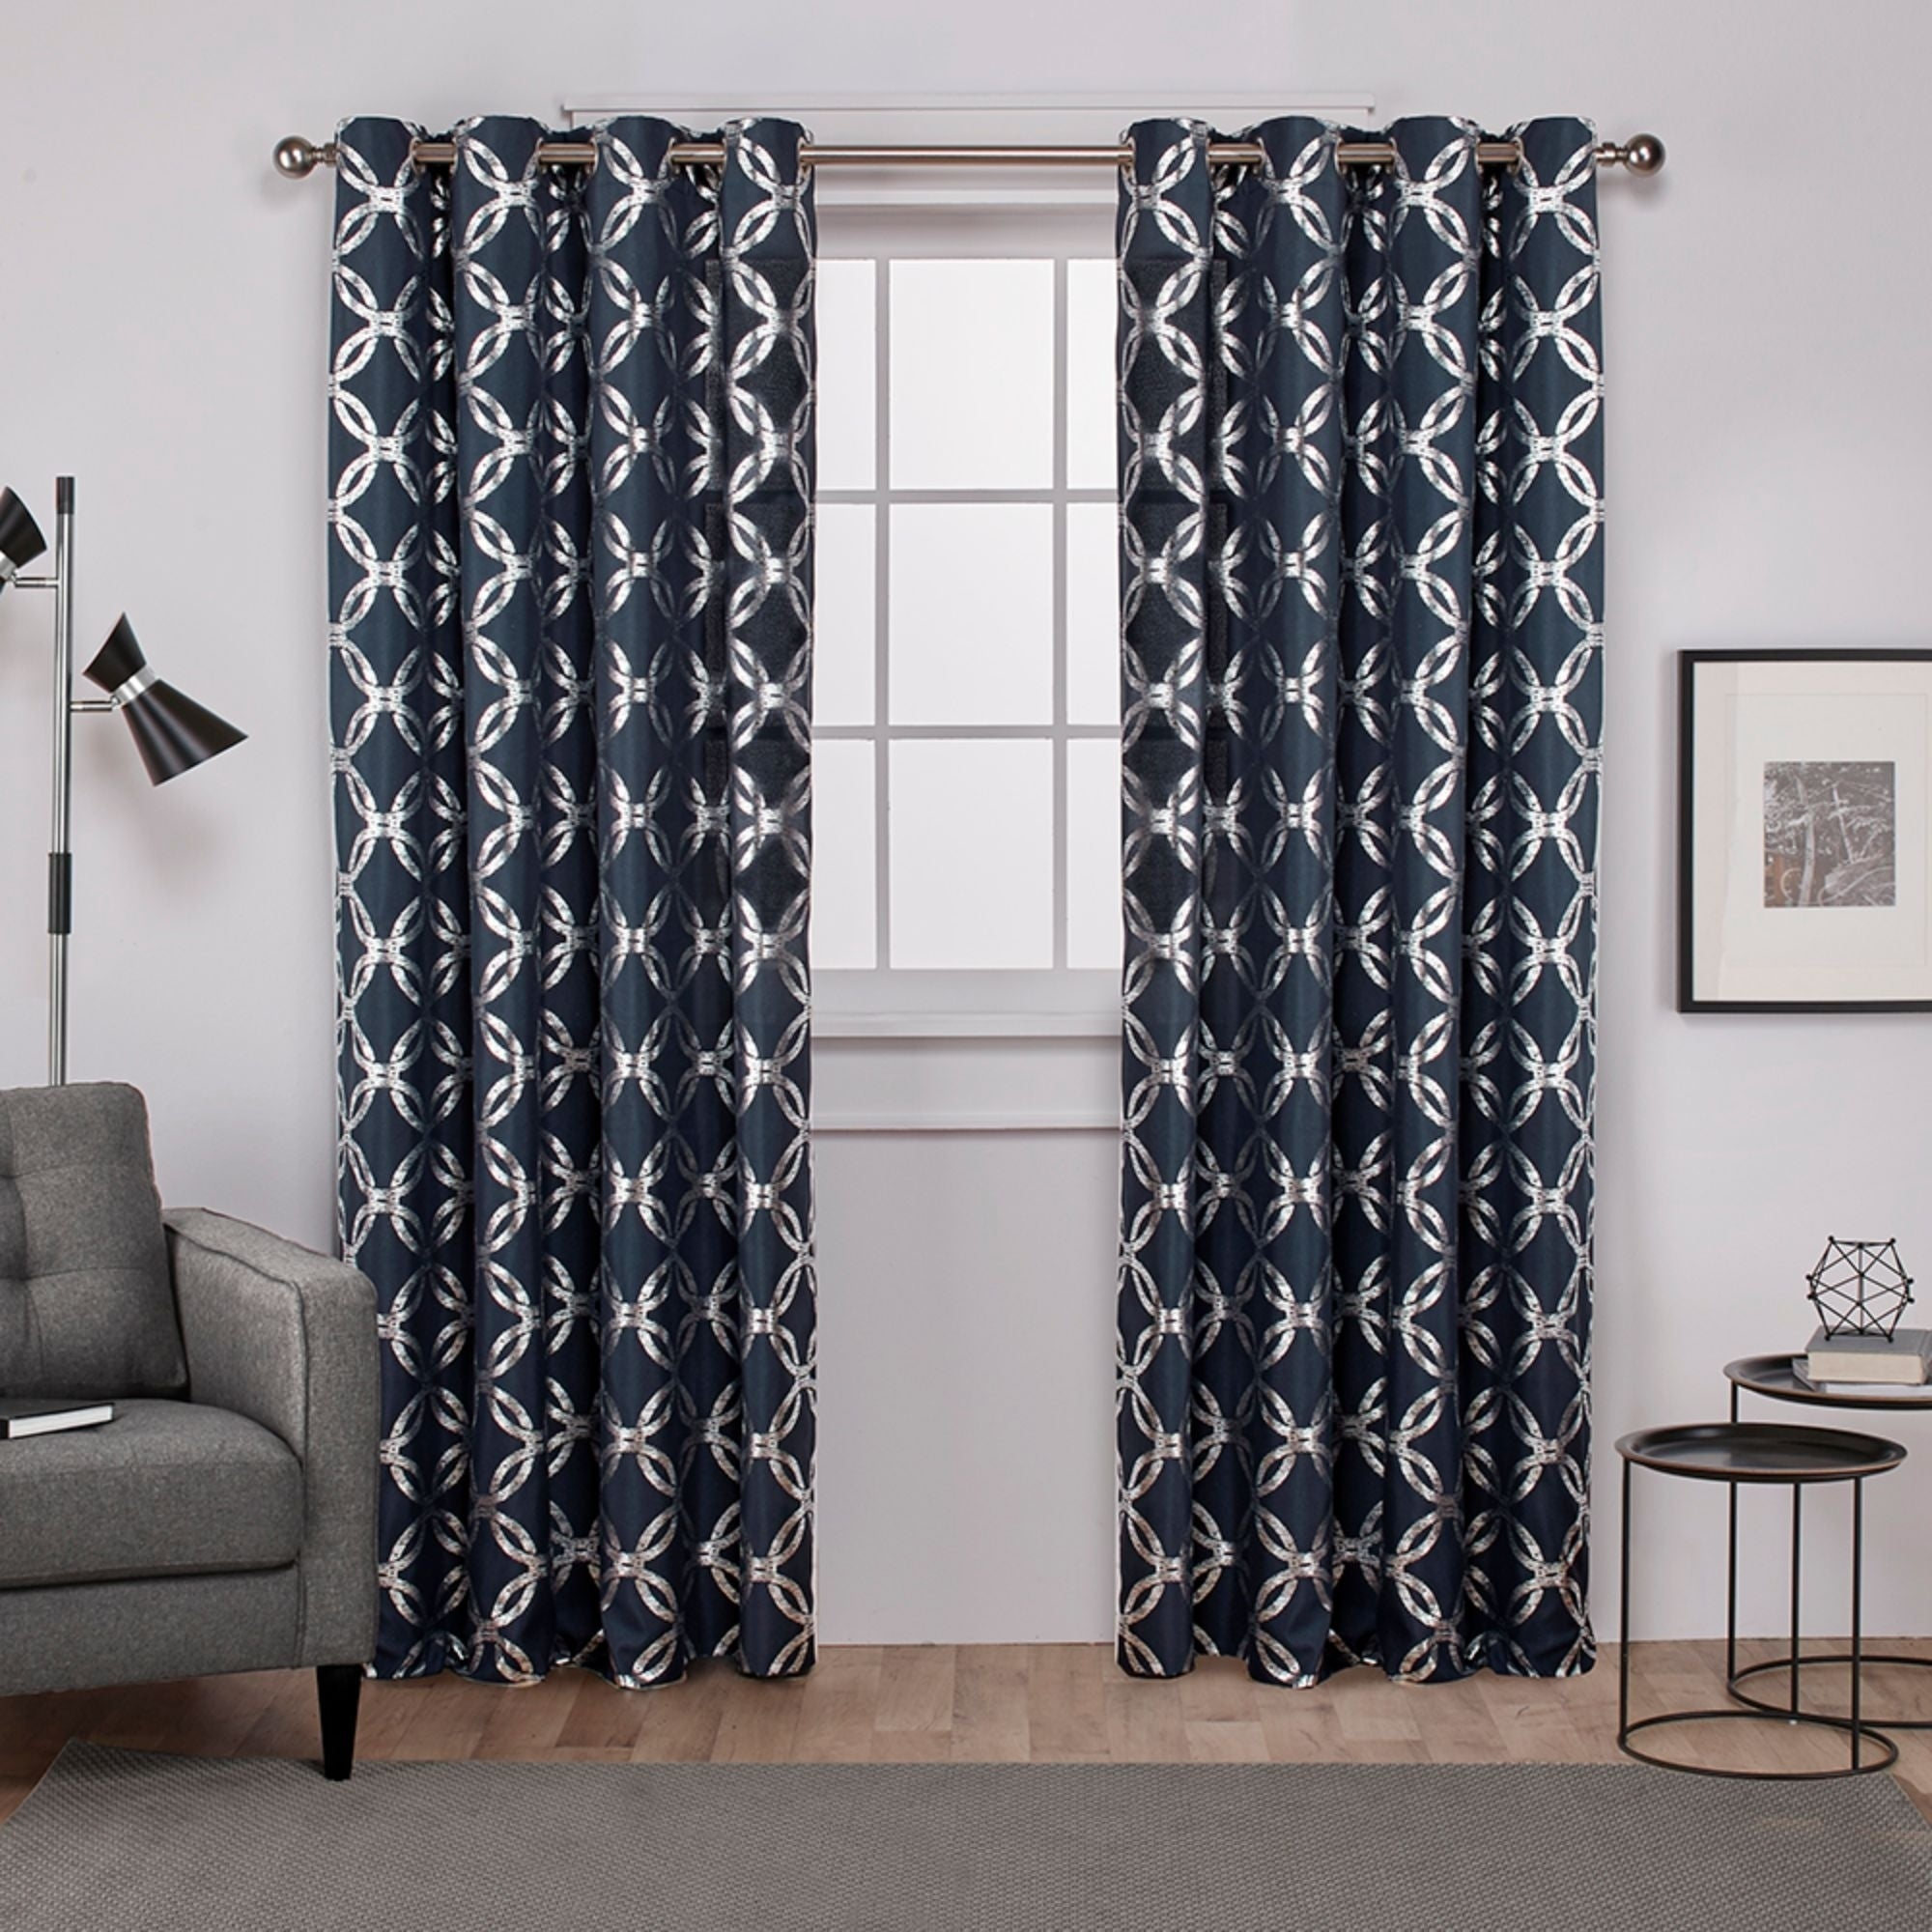 The Curated Nomad Sloat Metallic Geometric Grommet Top Curtain Panel Pair Within The Curated Nomad Duane Blackout Curtain Panel Pairs (View 20 of 30)